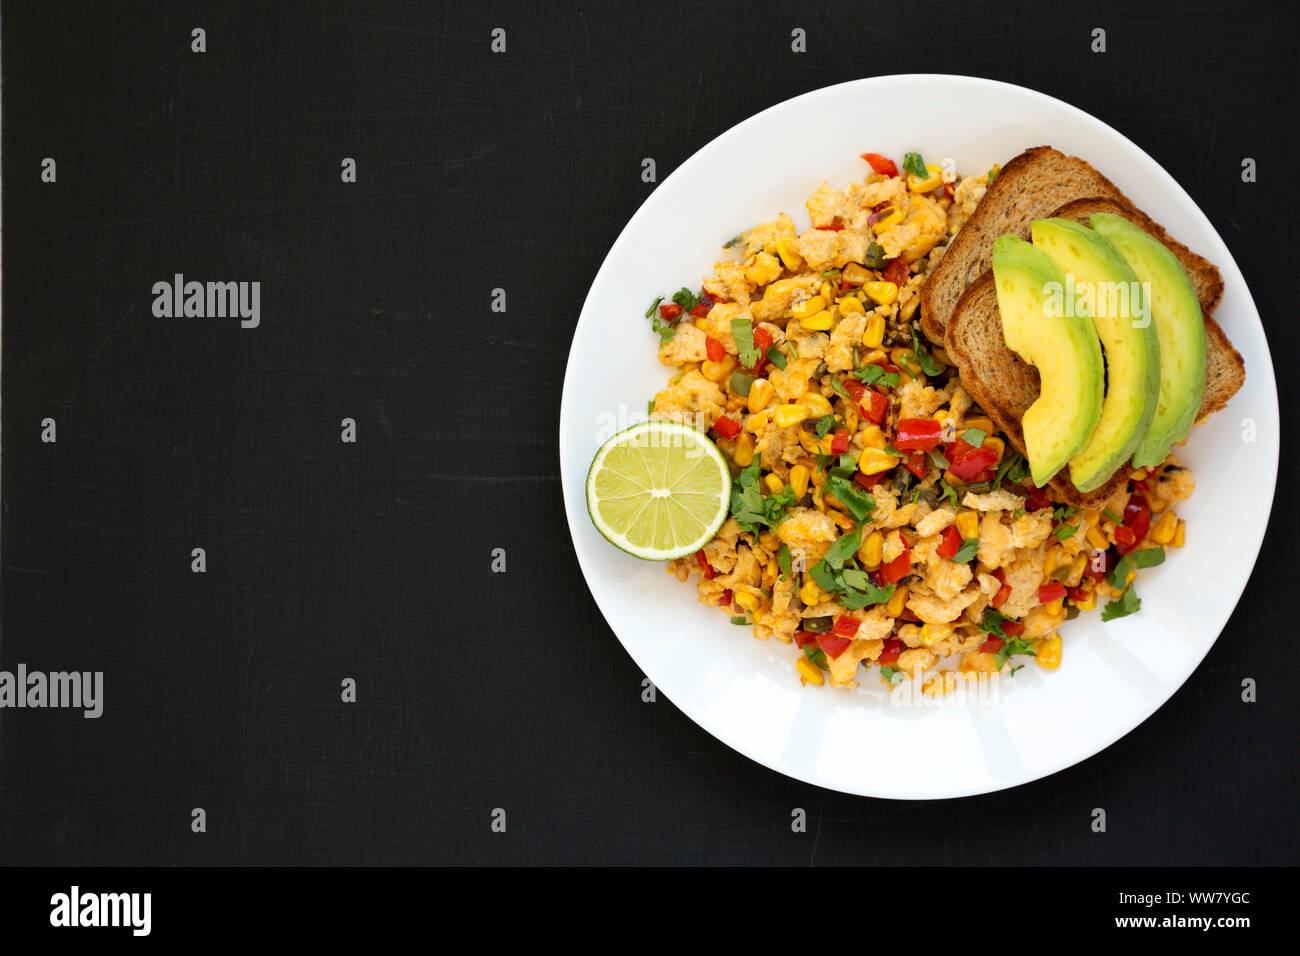 Homemade southwestern egg scramble with toast on a white plate on a black surface, top view. Flat lay, overhead, from above. Copy space. Stock Photo